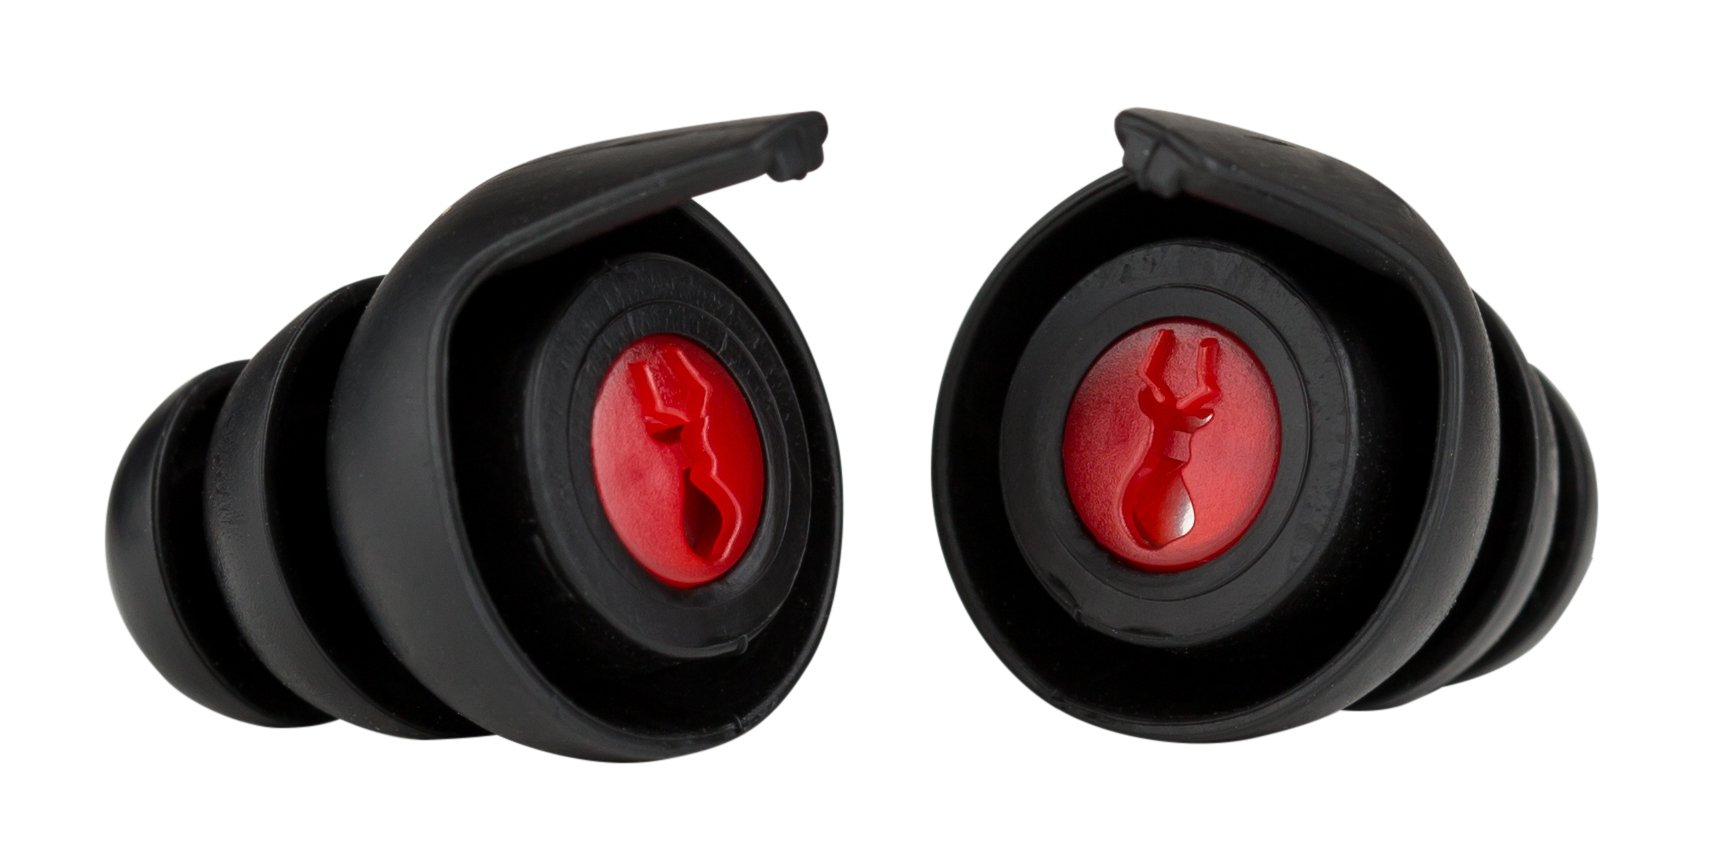 Safariland in-Ear Impulse Hearing Protection, Black/Red, Medium/Large by Safariland